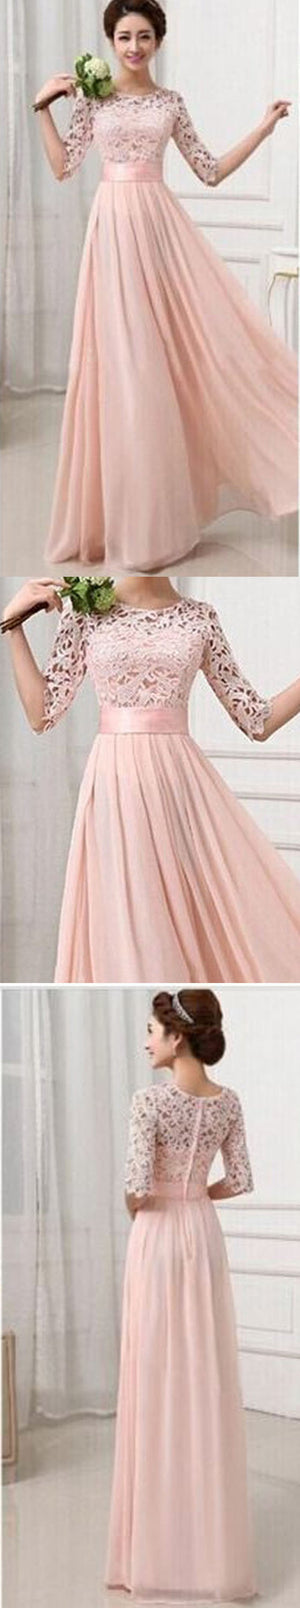 Most Popular Junior Half Sleeve Top  Lace Prom Dress Blush Pink Long Bridesmaid Dresses, WG27